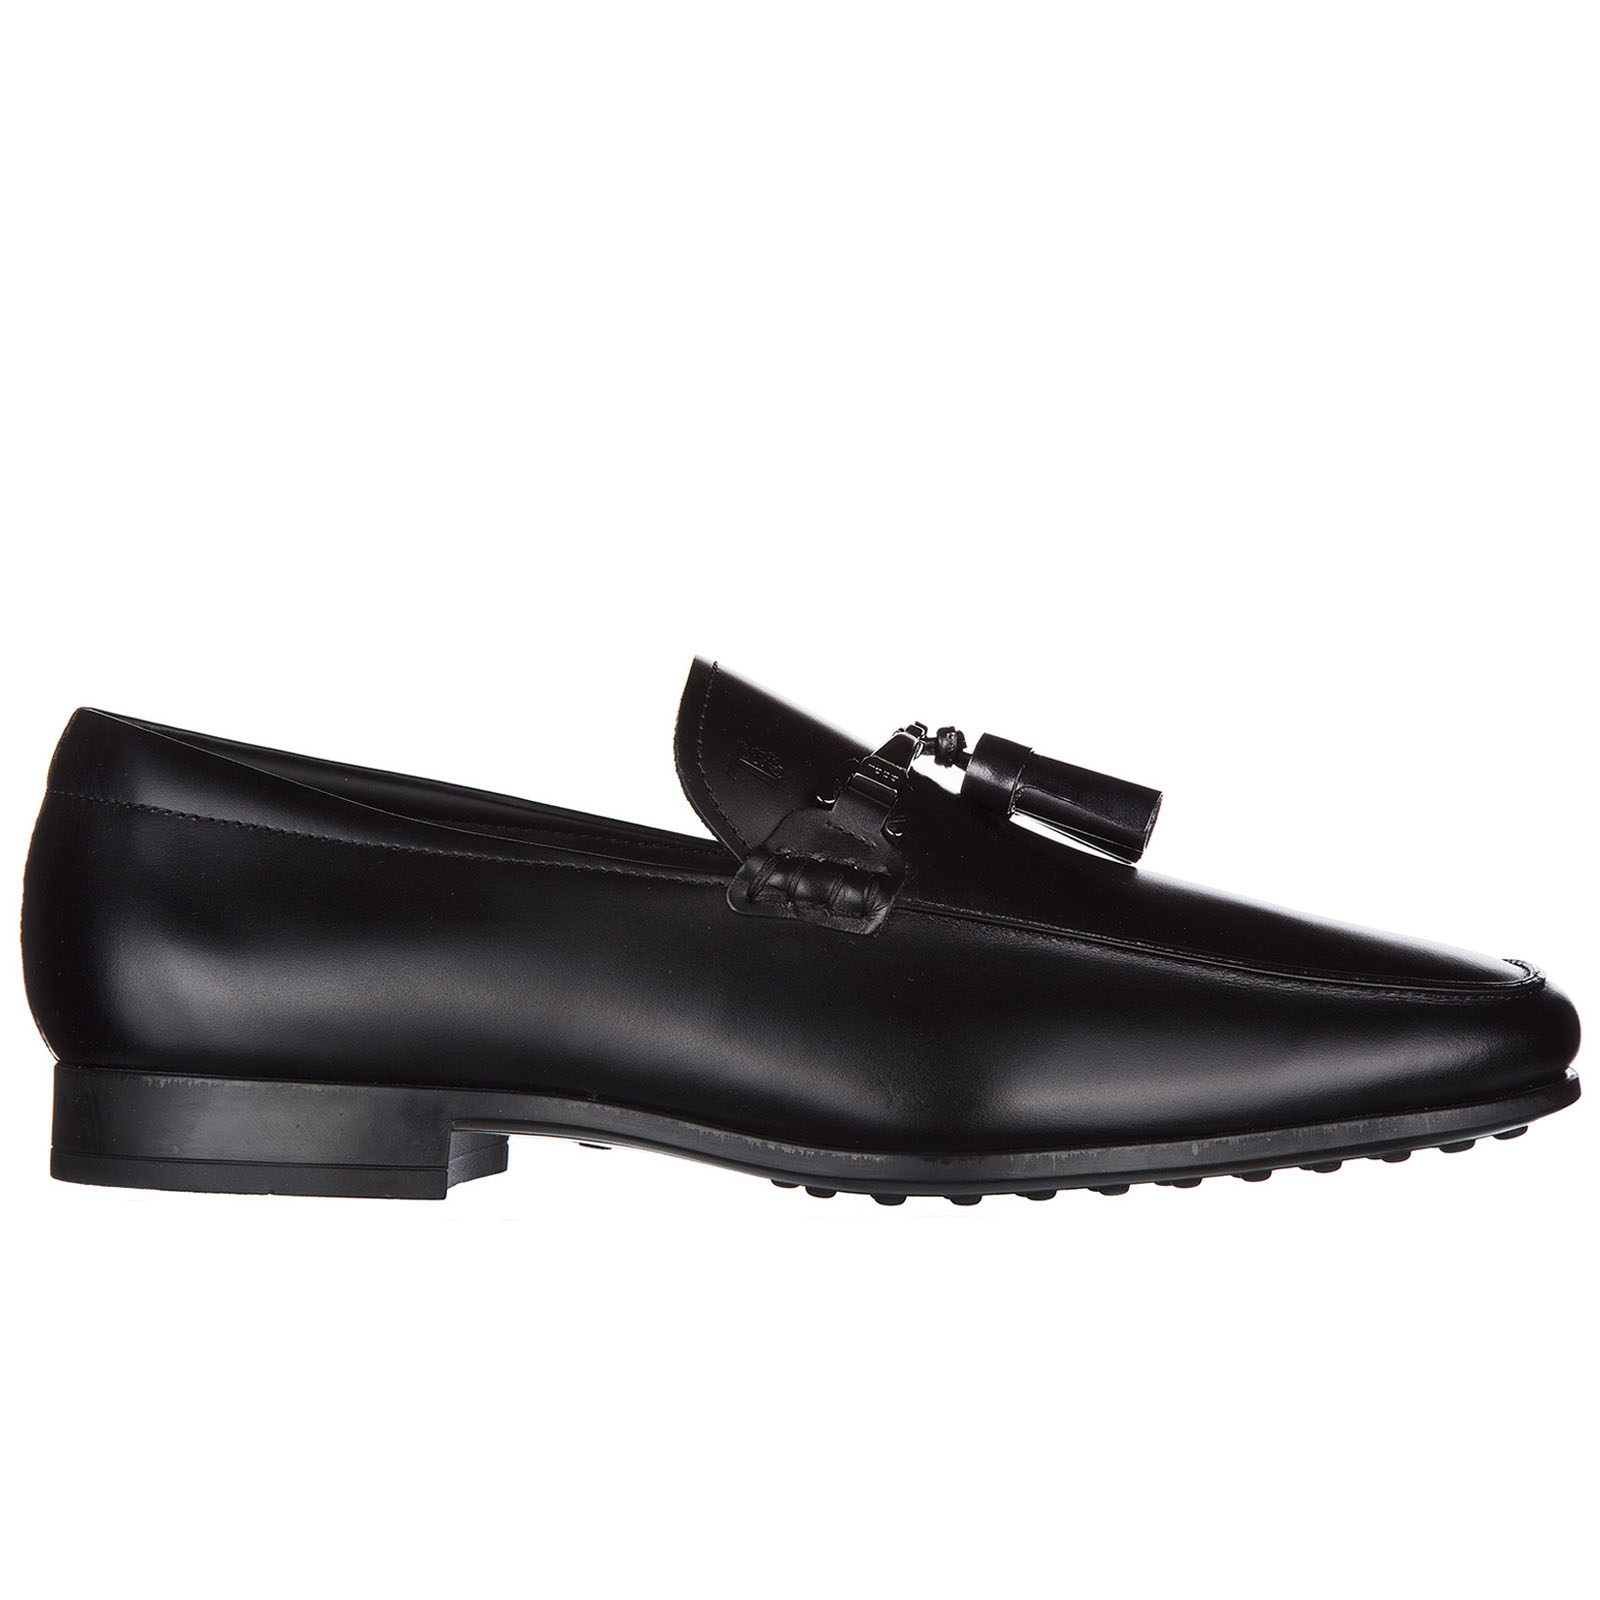 Men's leather loafers moccasins  double t